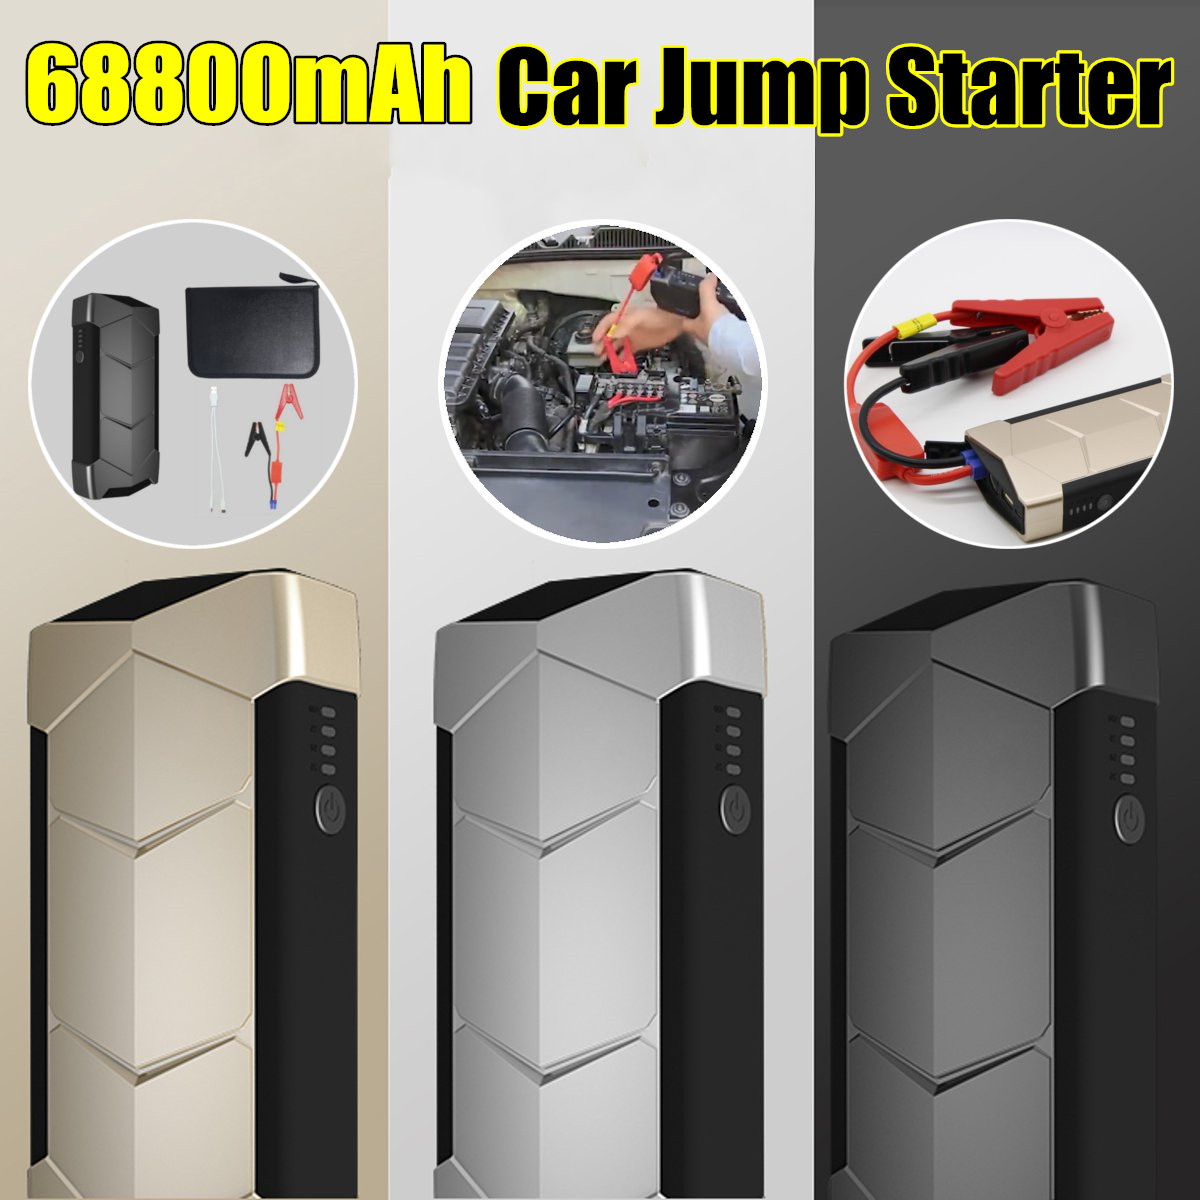 68800mAh Mini Portable 12V Car Battery Jump Starter Auto Jumper Engine Power Bank Starting Up With Smart Clip Data Line with bag68800mAh Mini Portable 12V Car Battery Jump Starter Auto Jumper Engine Power Bank Starting Up With Smart Clip Data Line with bag